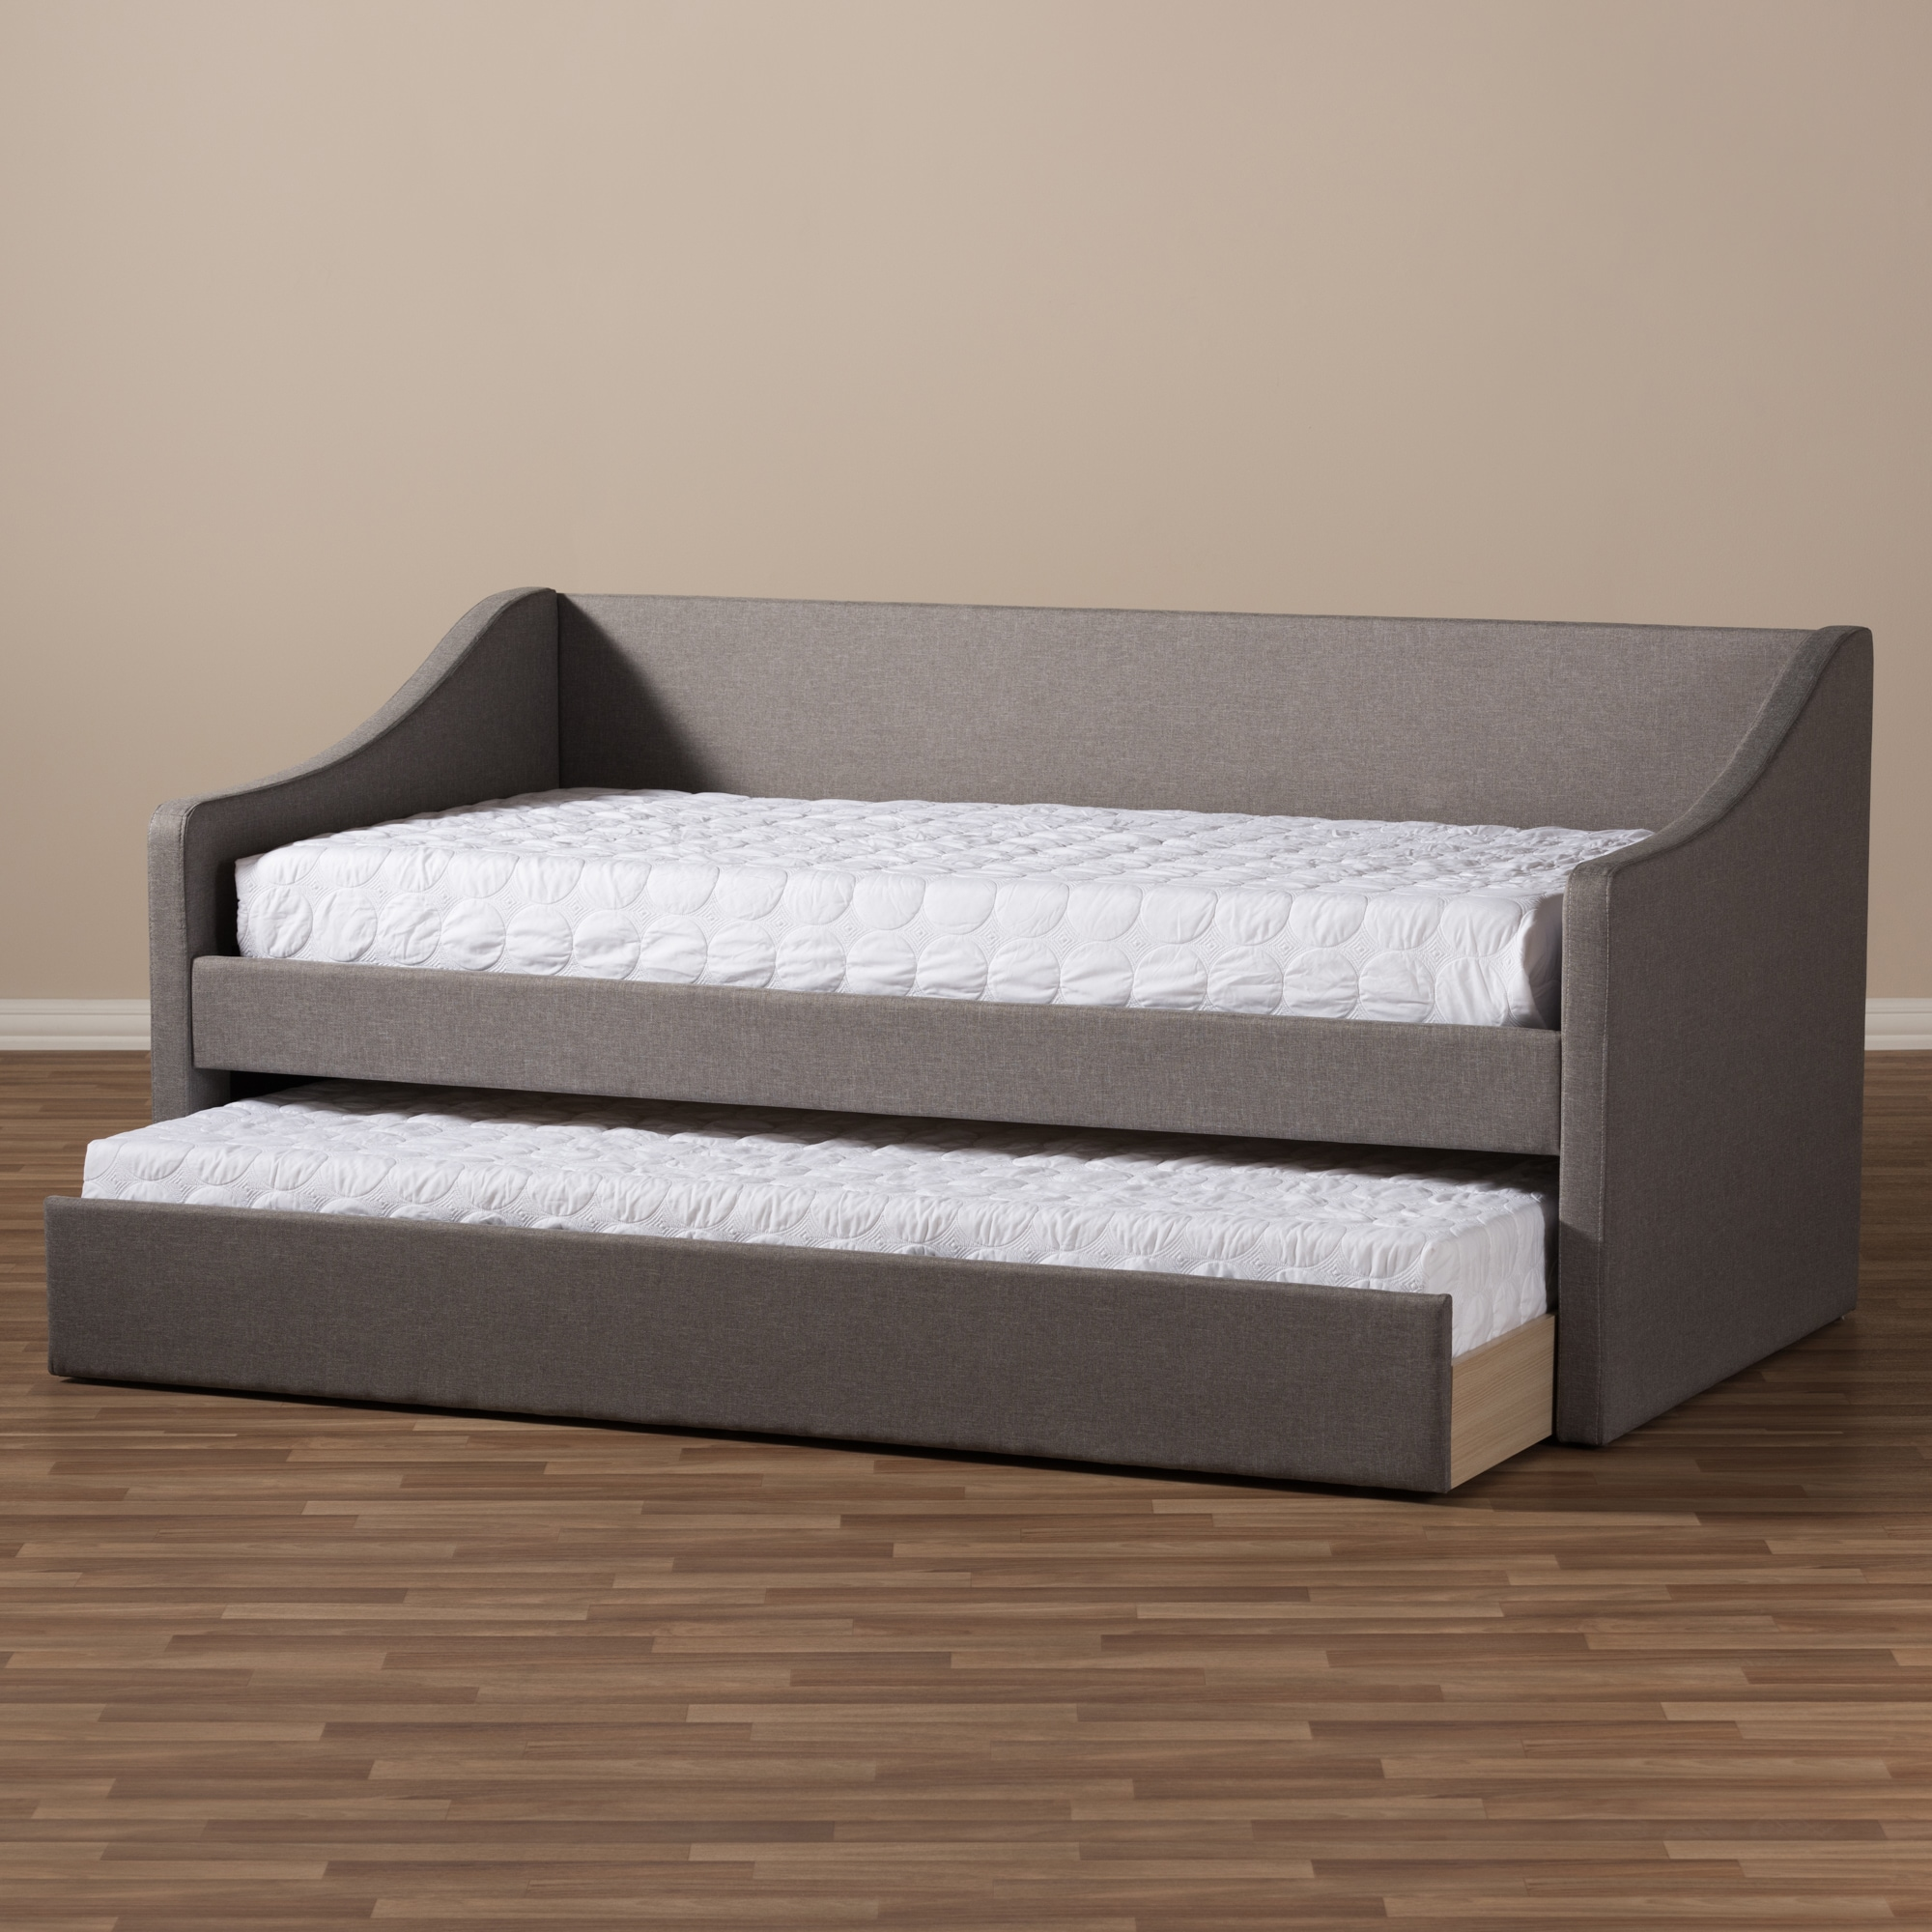 en products what junior a is bed trundle